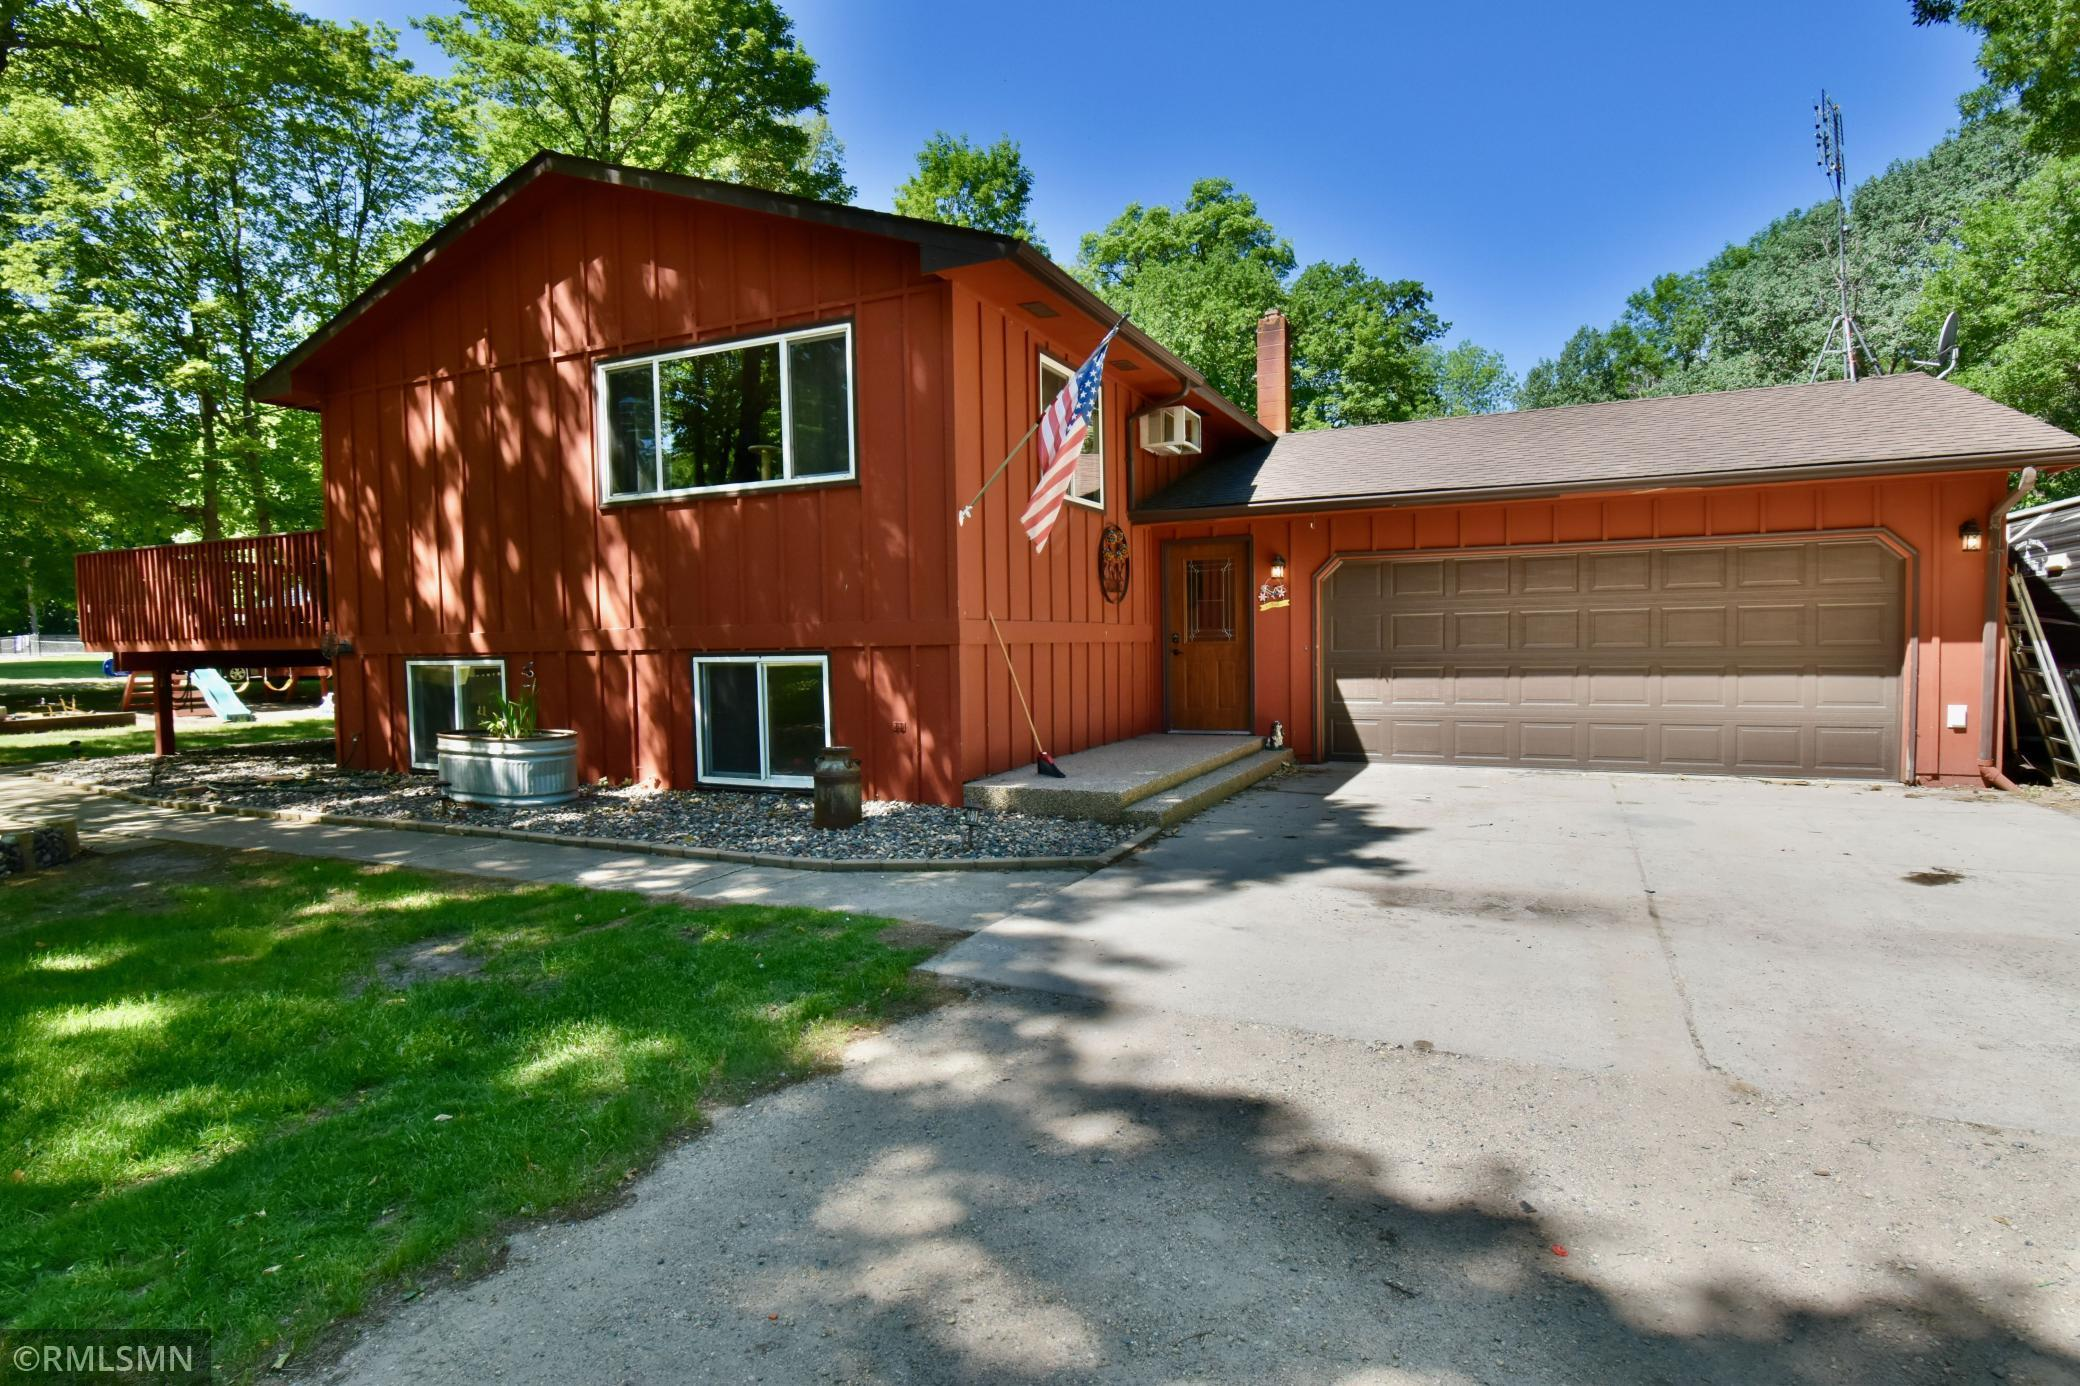 Beautiful three bed, two bath home within minutes of Alexandria, MN. This home offers gorgeous hardwood floors with open living space. Home sits on 3+ acres so you can enjoy the big mature trees and have plenty of room for entertaining guests, or just enjoying your own private back yard. This homes location is amazing being so close to Hwy 29 you get the comfort of being right outside town but also get that privacy with the 3+ acres. This home truly has it all!